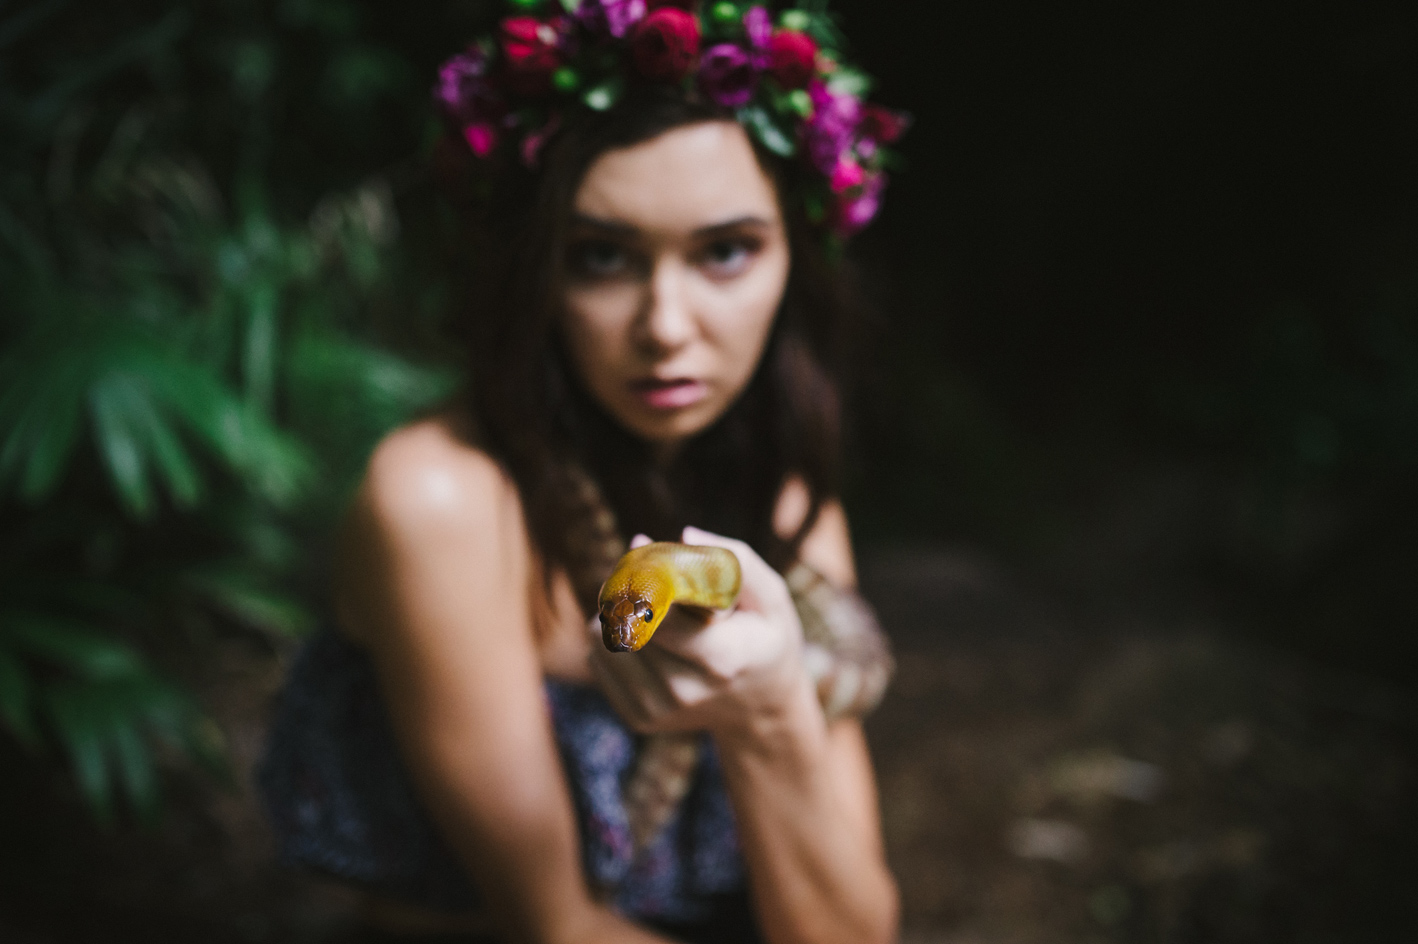 003-python-flowers_crown-of-eden_sophie-baker-photography